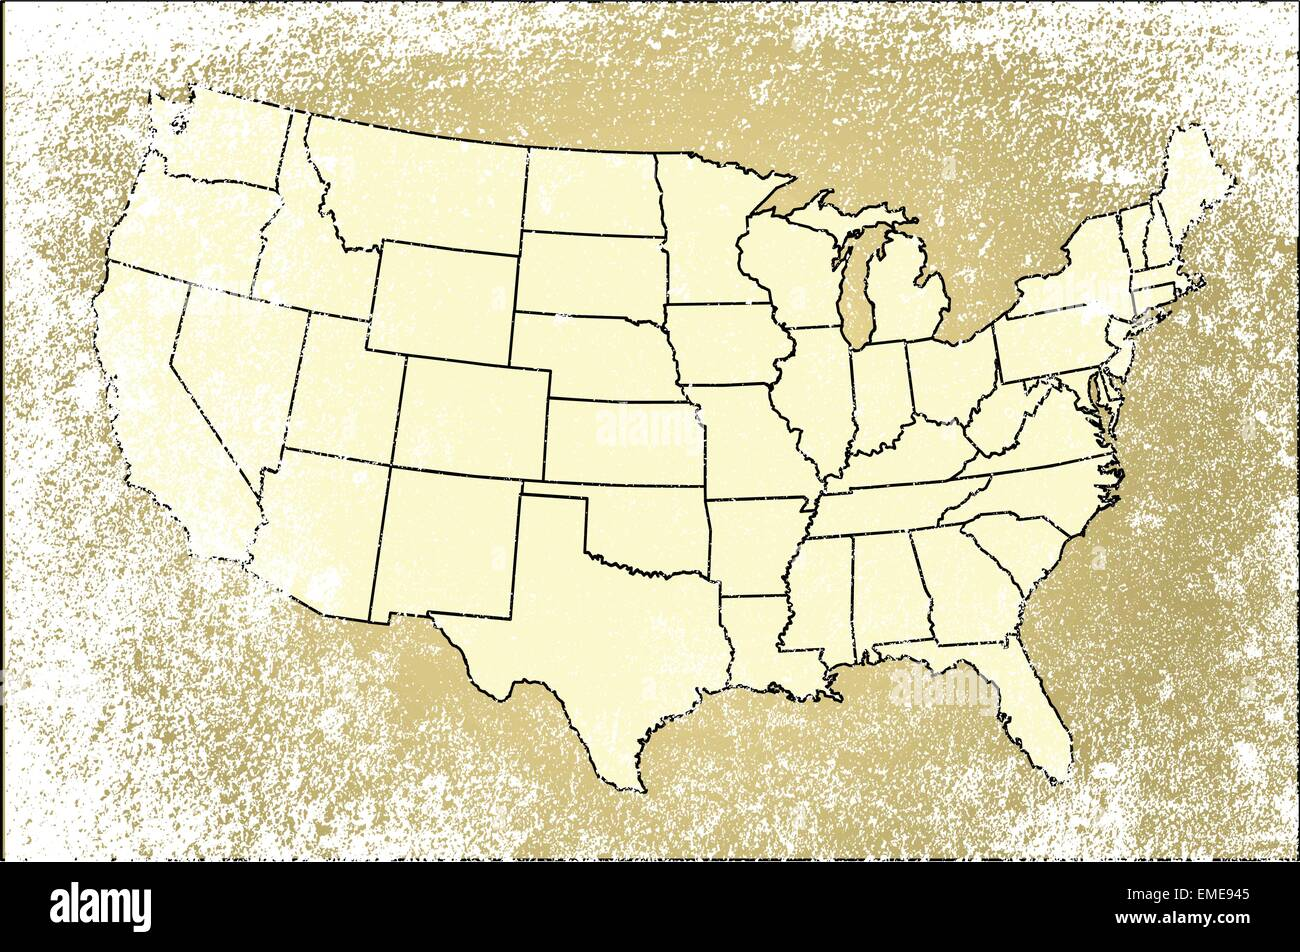 United States of America States Map Stock Vector